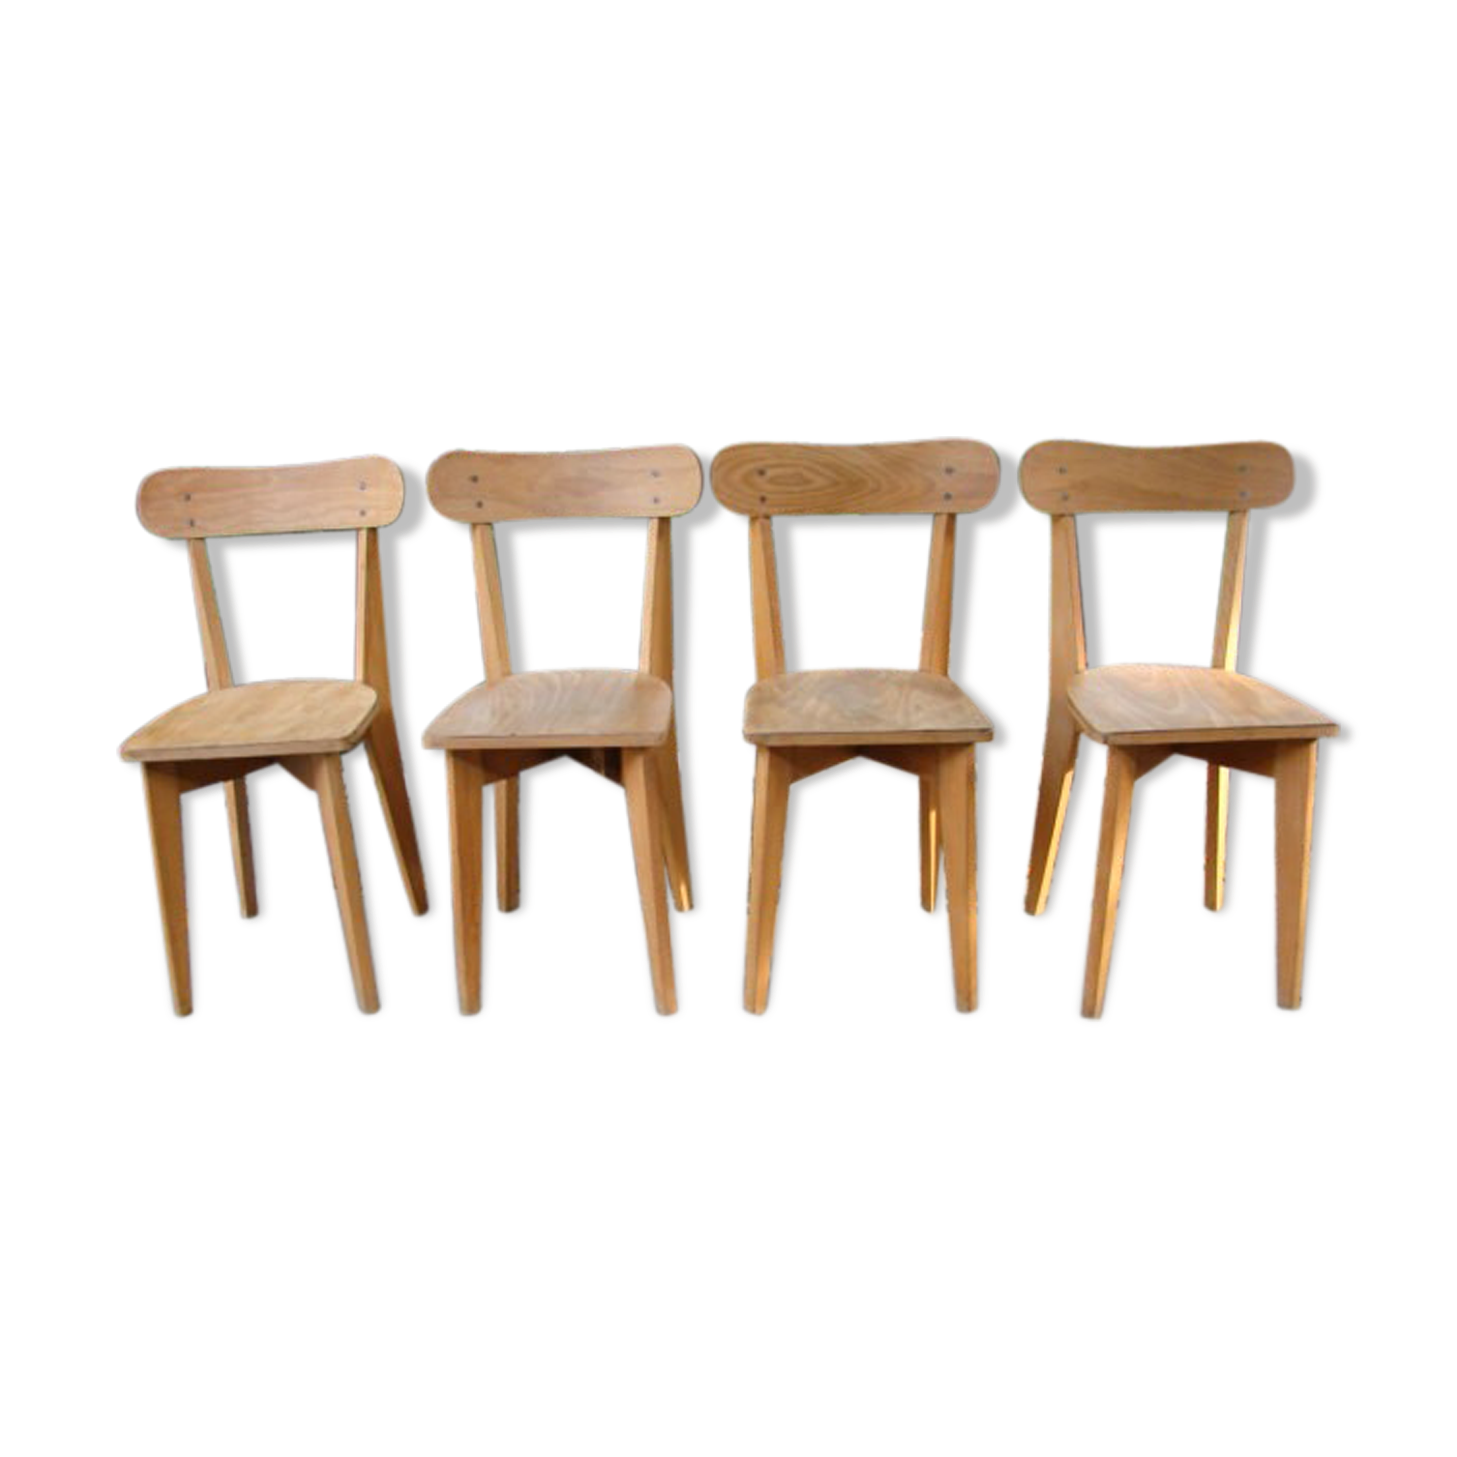 chaises bistrot anciennes elegant chaises bistrot bois chaises en bois bistrot la bohame. Black Bedroom Furniture Sets. Home Design Ideas